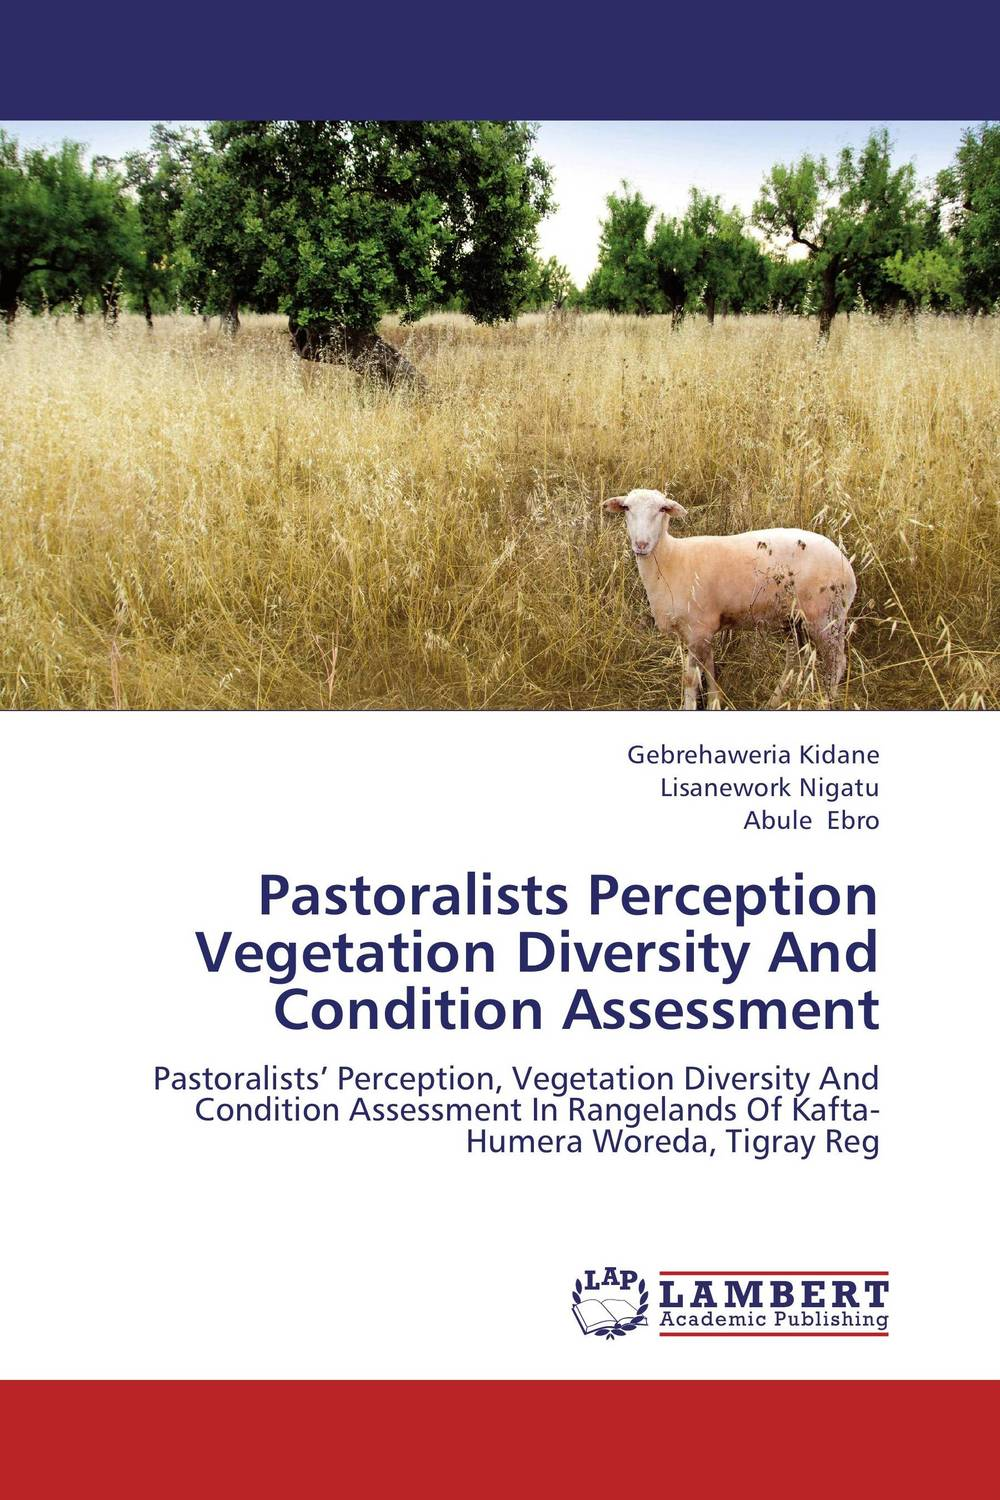 купить Pastoralists Perception Vegetation Diversity And Condition Assessment недорого